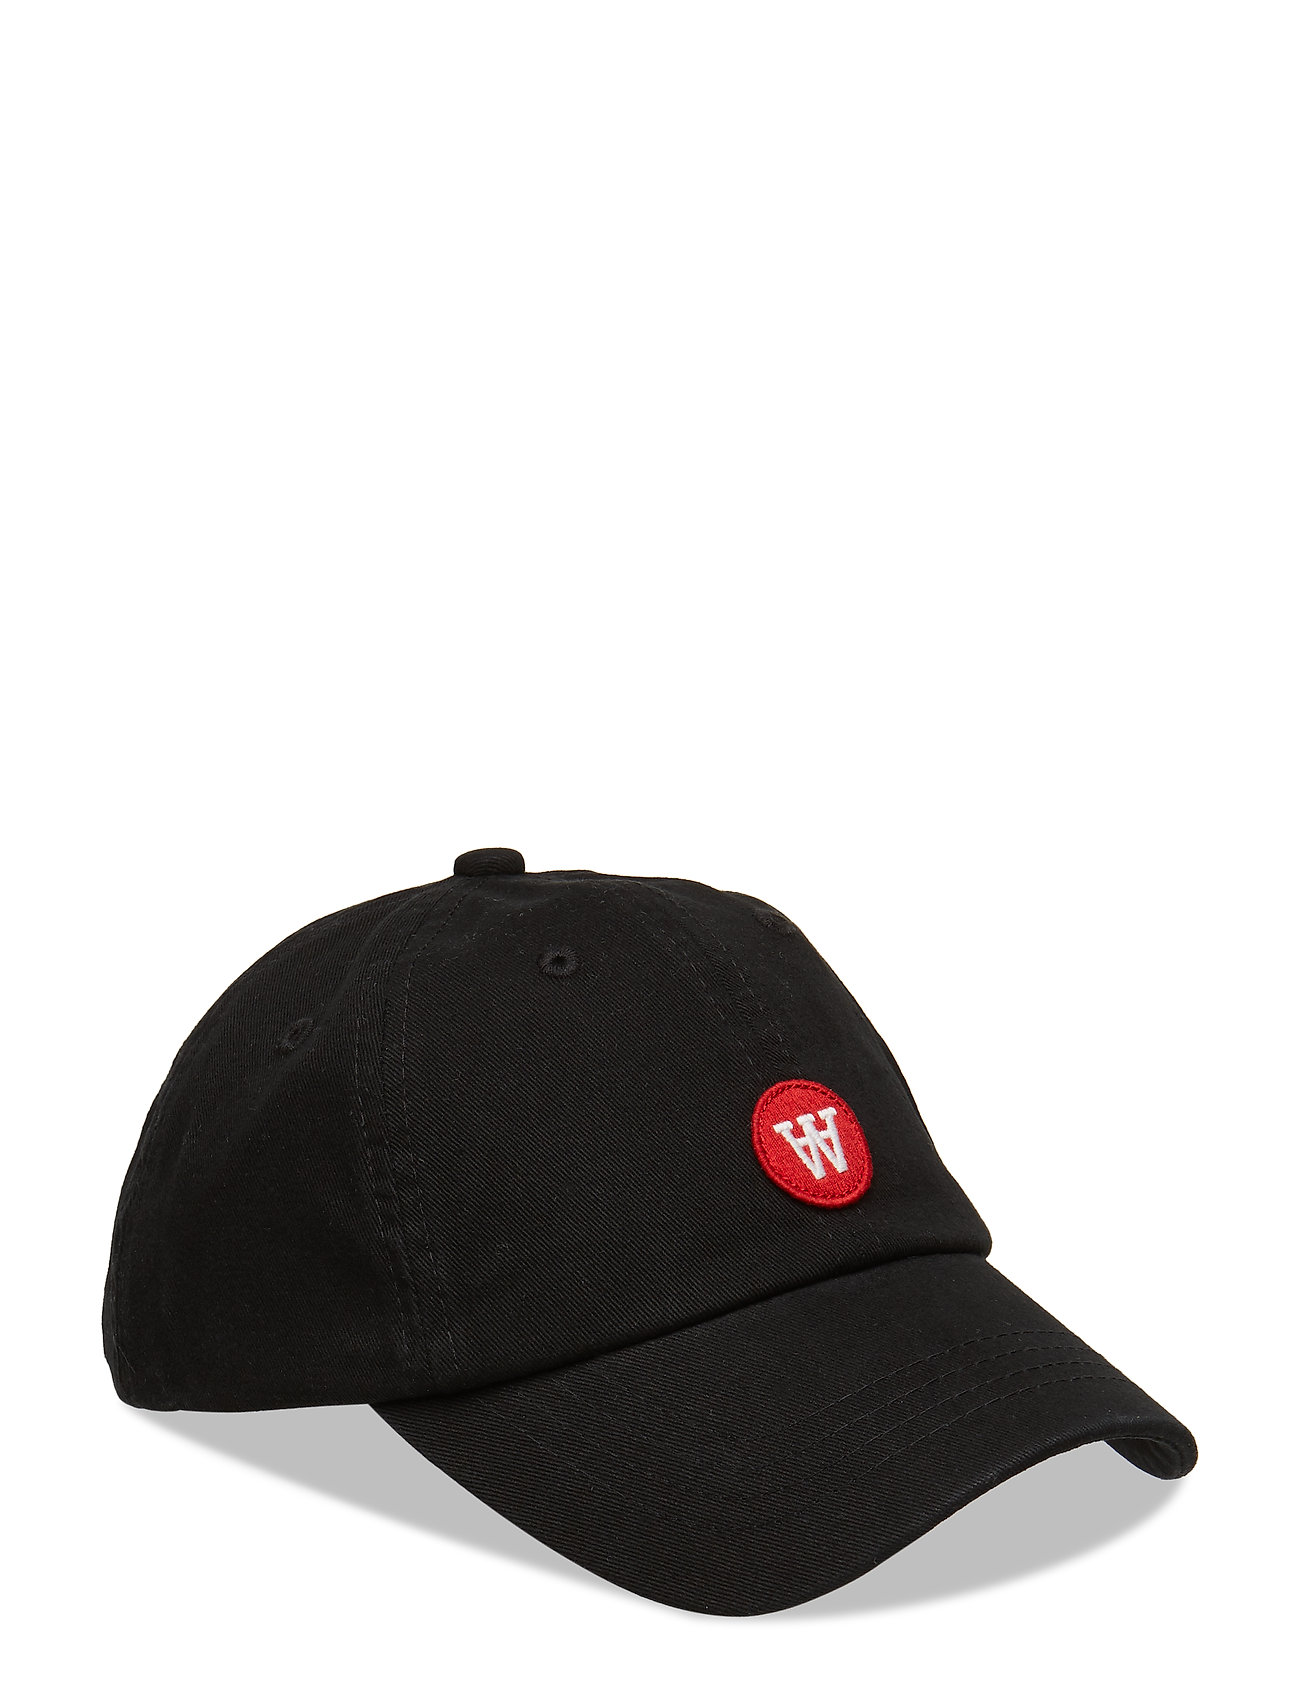 Wood Wood Sim kids cap - BLACK